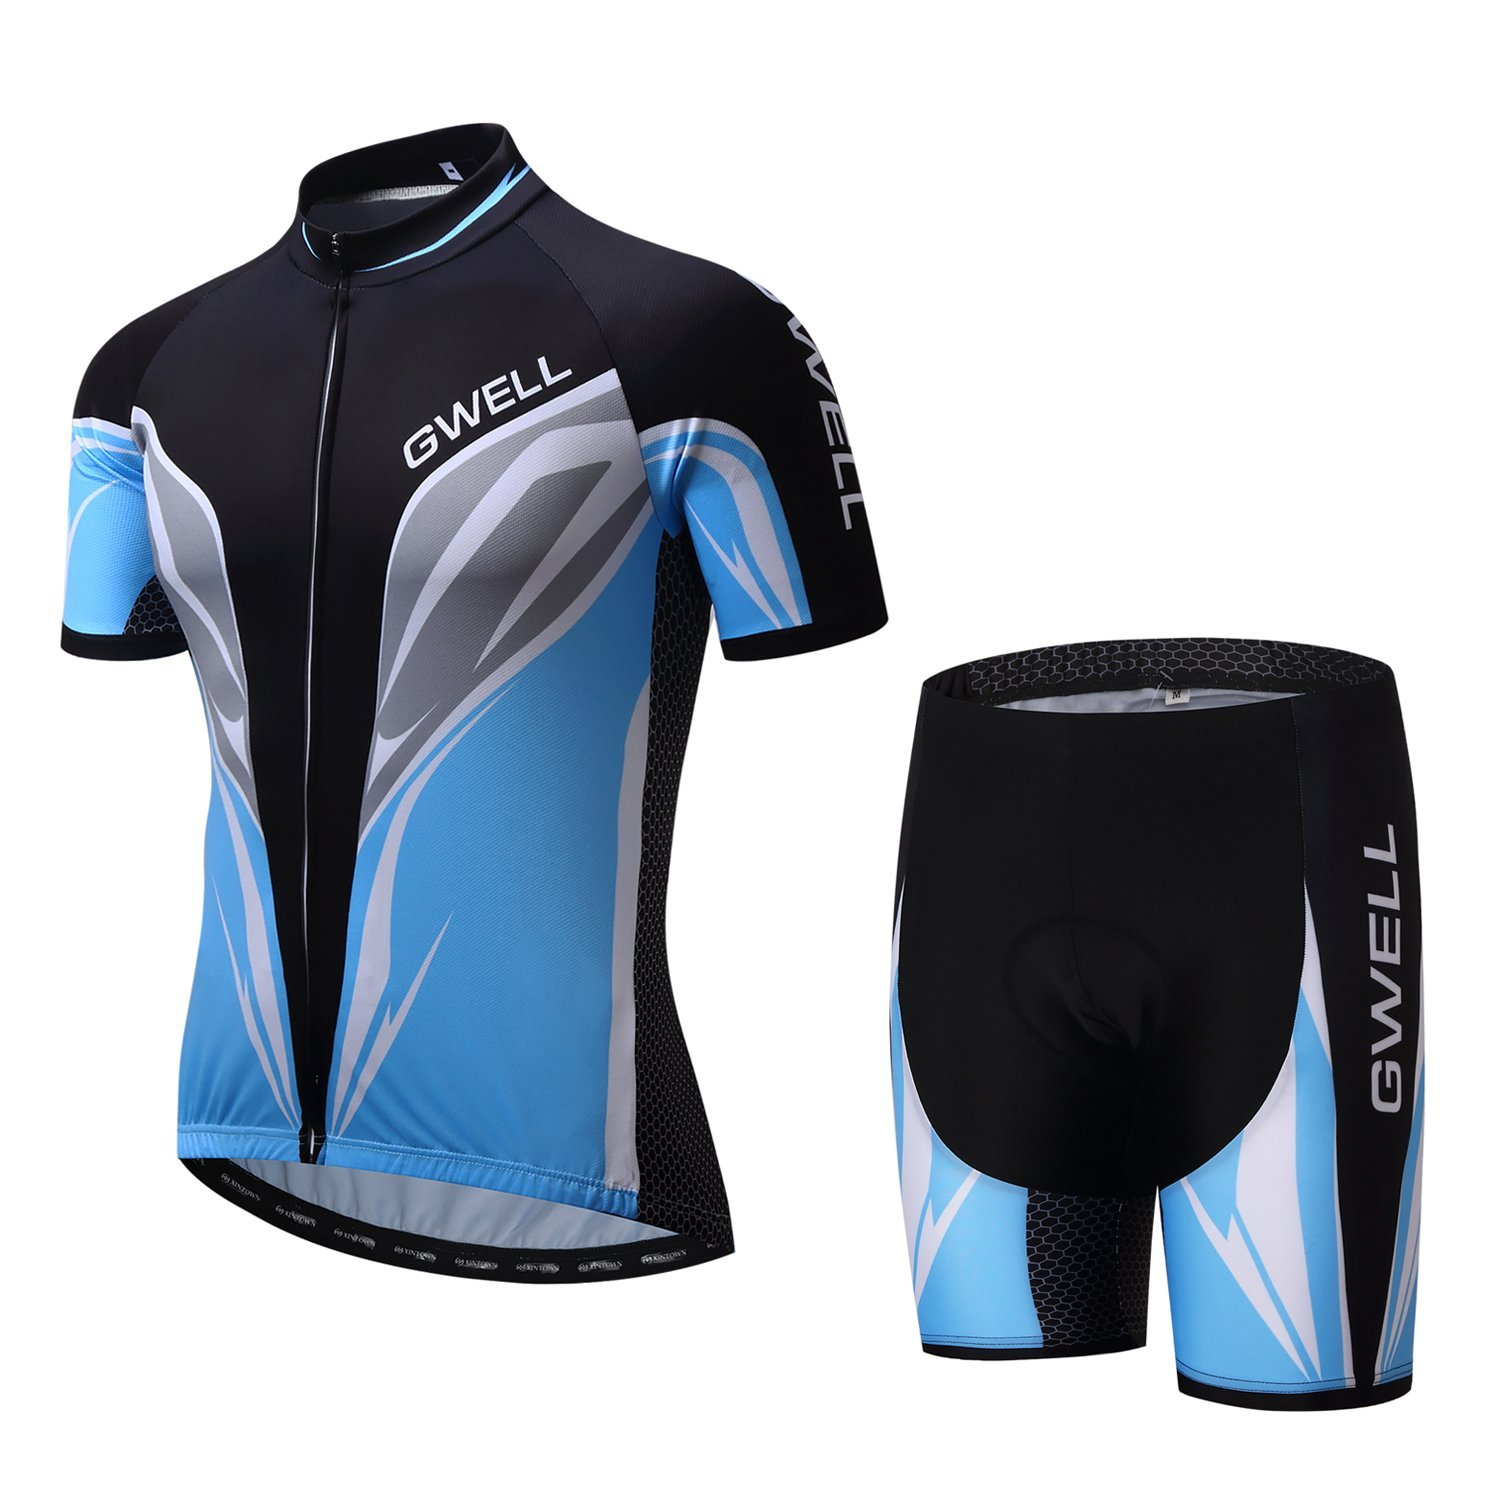 gwell herren radtrikot set fahrrad trikot kurzarm. Black Bedroom Furniture Sets. Home Design Ideas